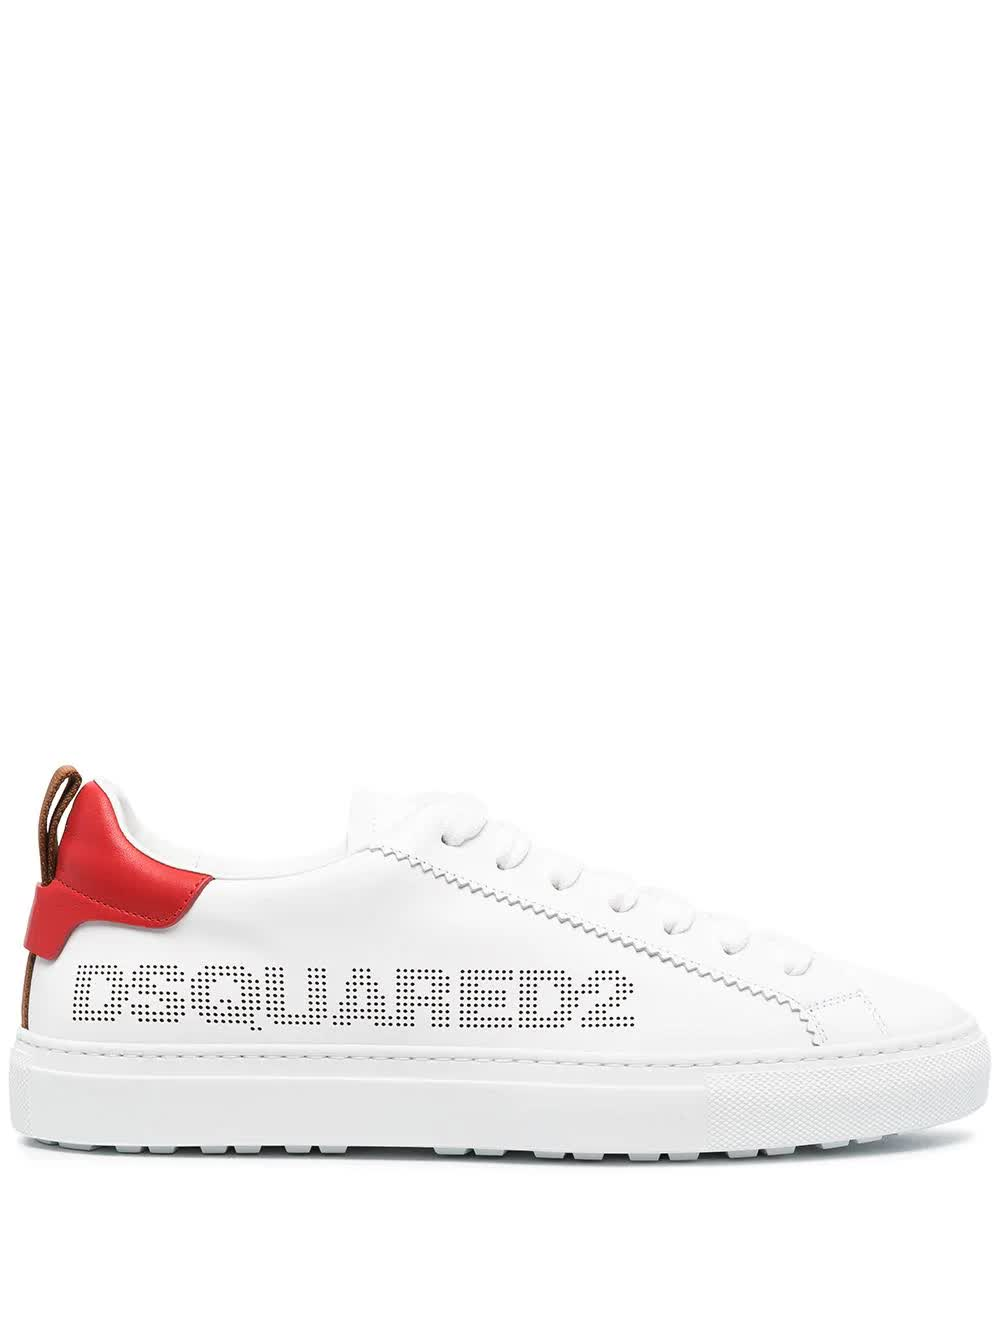 Dsquared2 Leathers MAN WHITE AND RED SAN DIEGO SNEAKERS